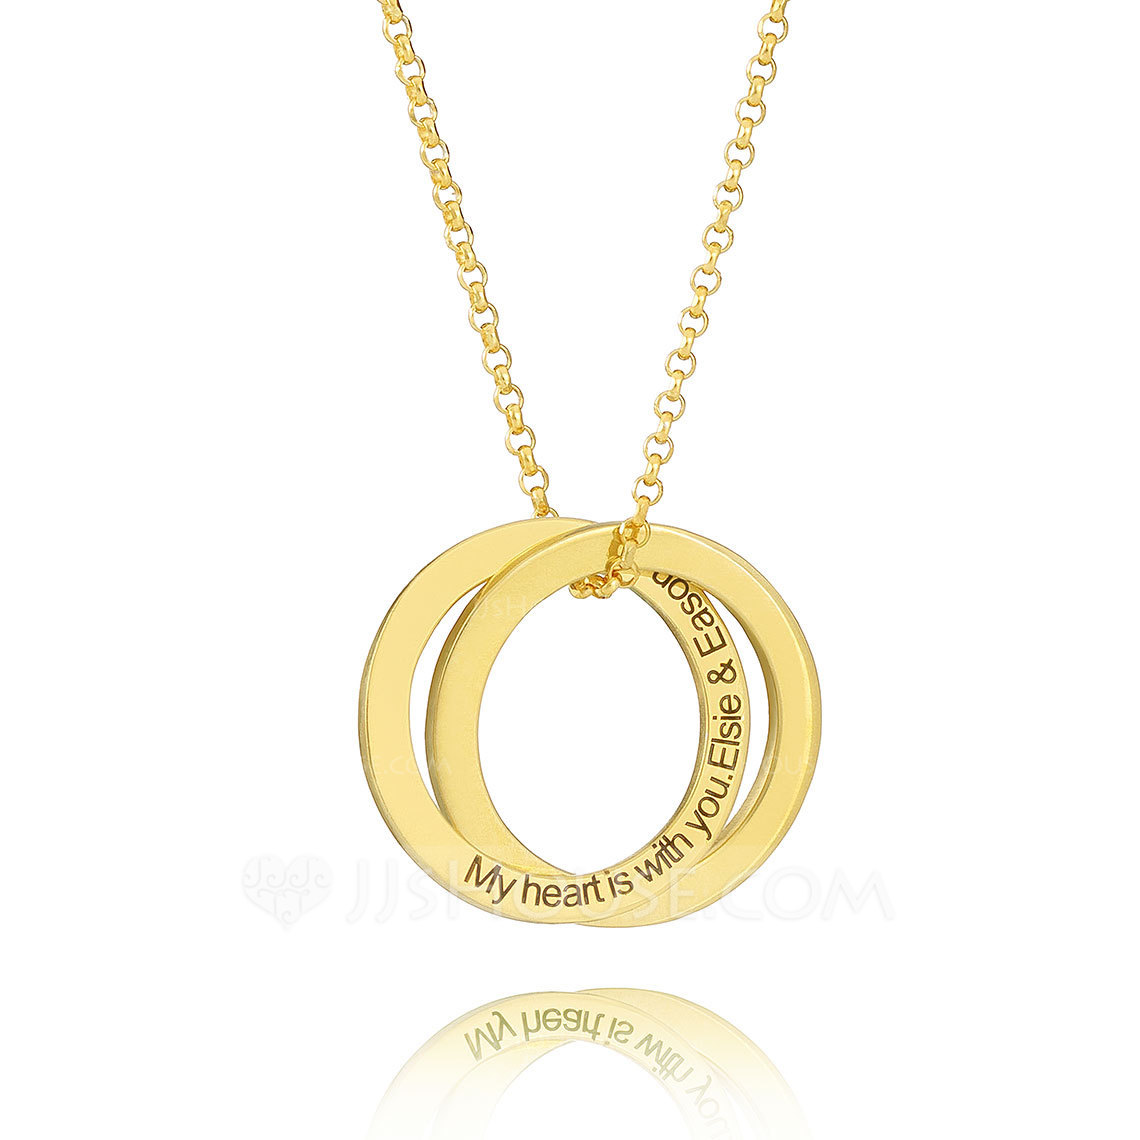 Custom 18k Gold Plated Silver Cross Circle Engraved Necklace Circle Necklace - Birthday Gifts Mother's Day Gifts